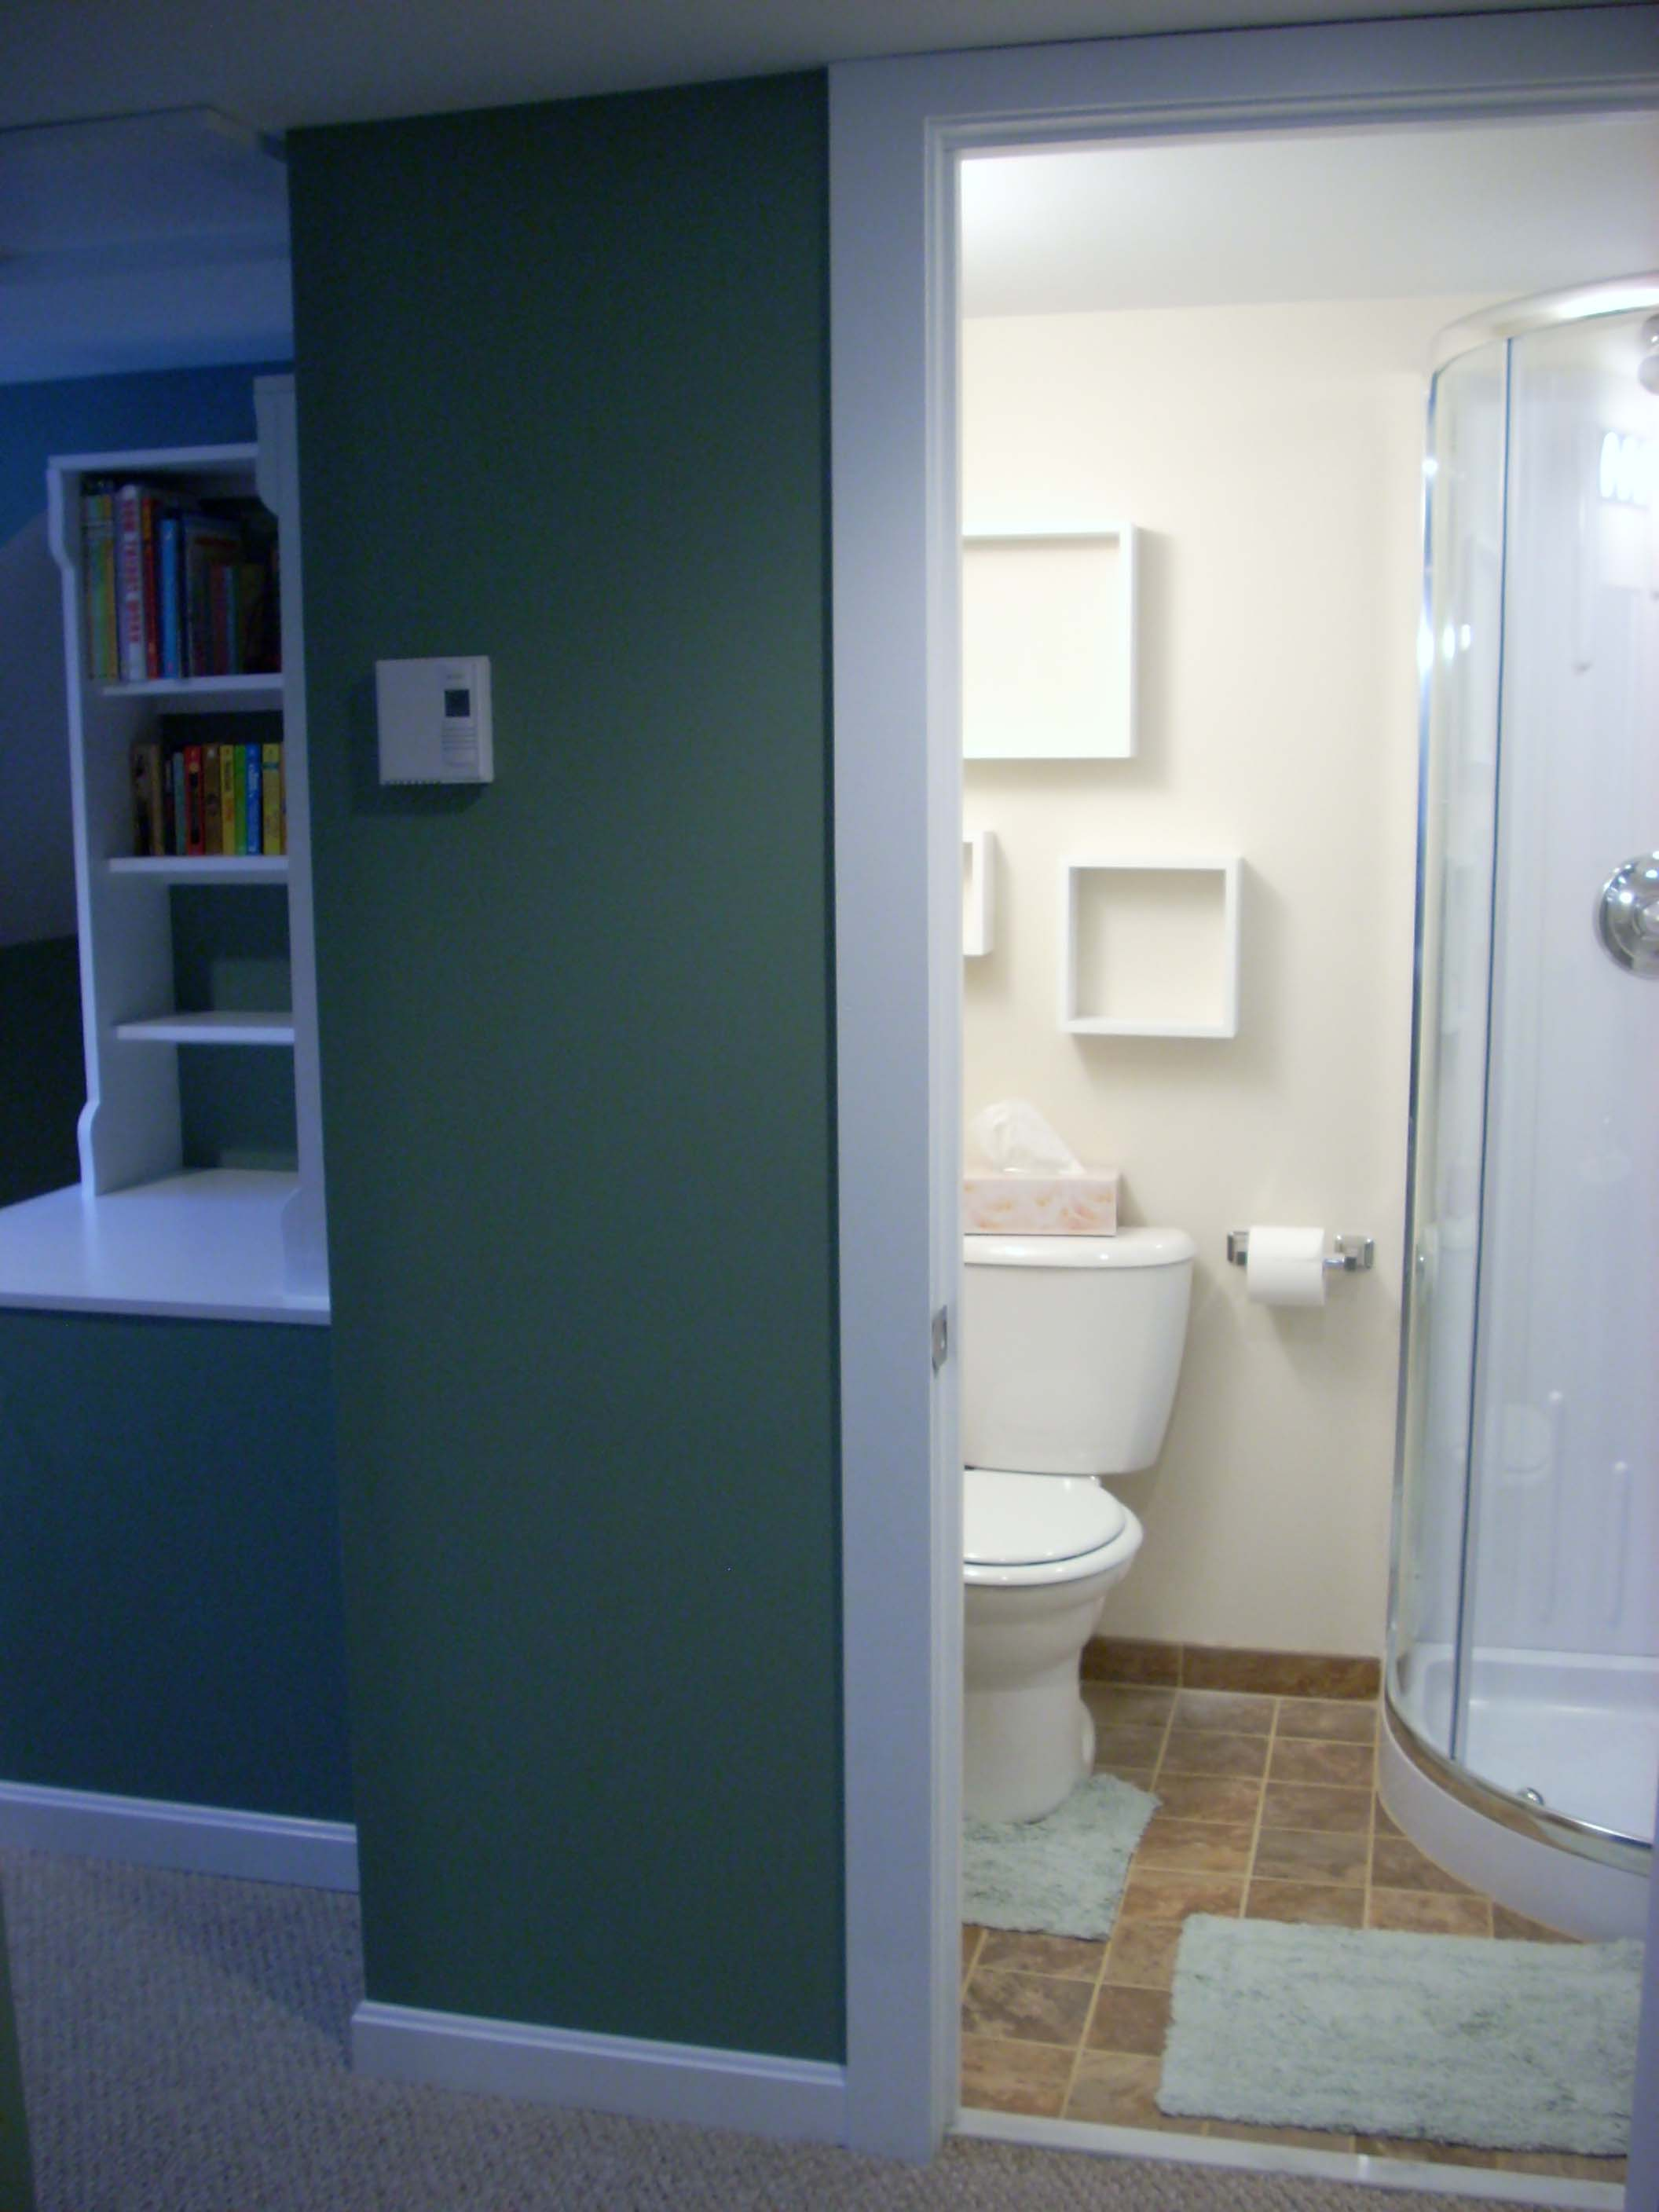 upstairs small bath with shower stall & pedestal sink